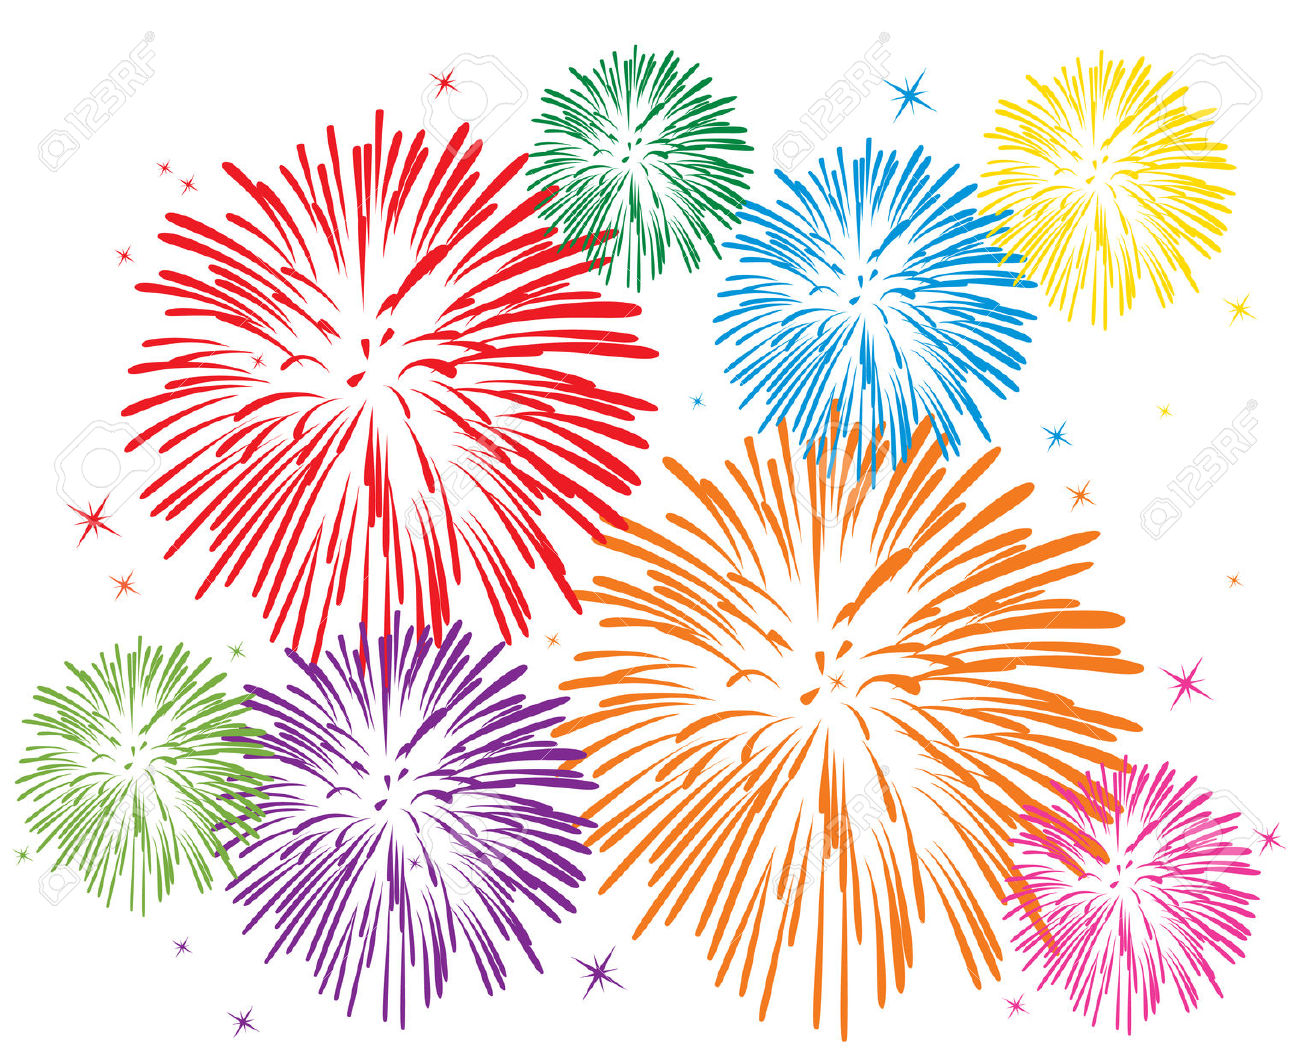 Firework images clipart graphic royalty free stock Clipart Of Fireworks & Look At Clip Art Images - ClipartLook graphic royalty free stock